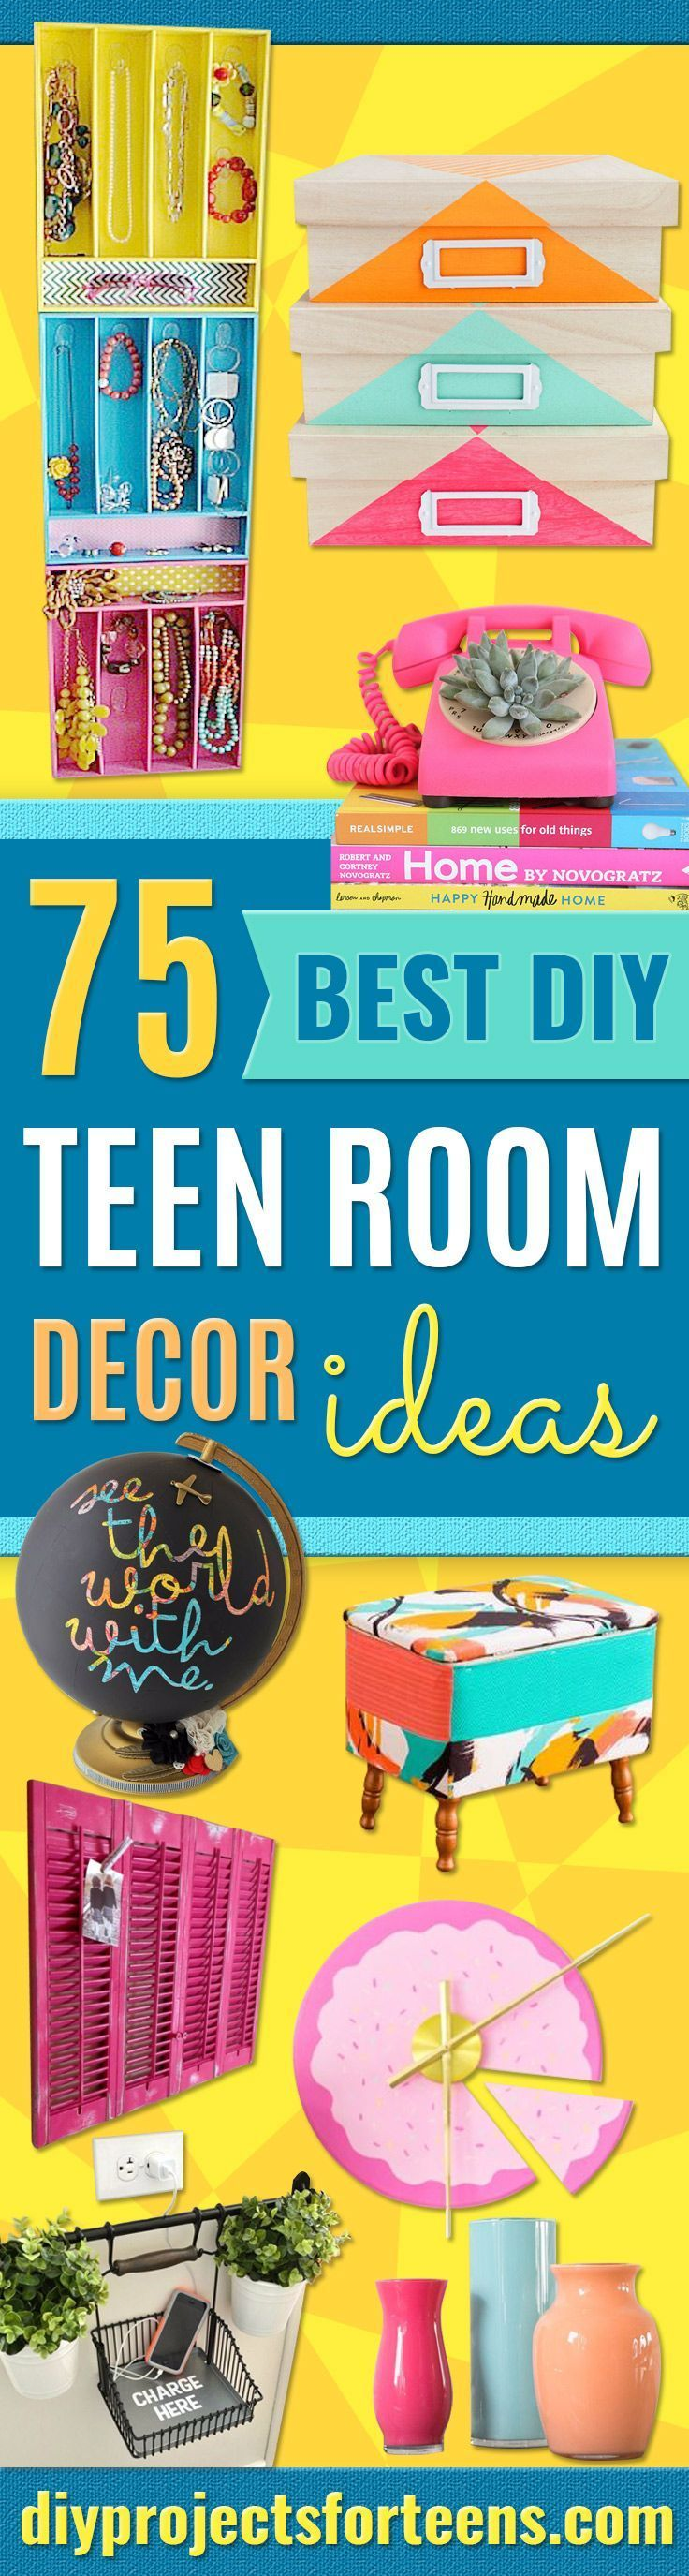 268 best Craft Project Ideas images on Pinterest | Bedroom ideas ...